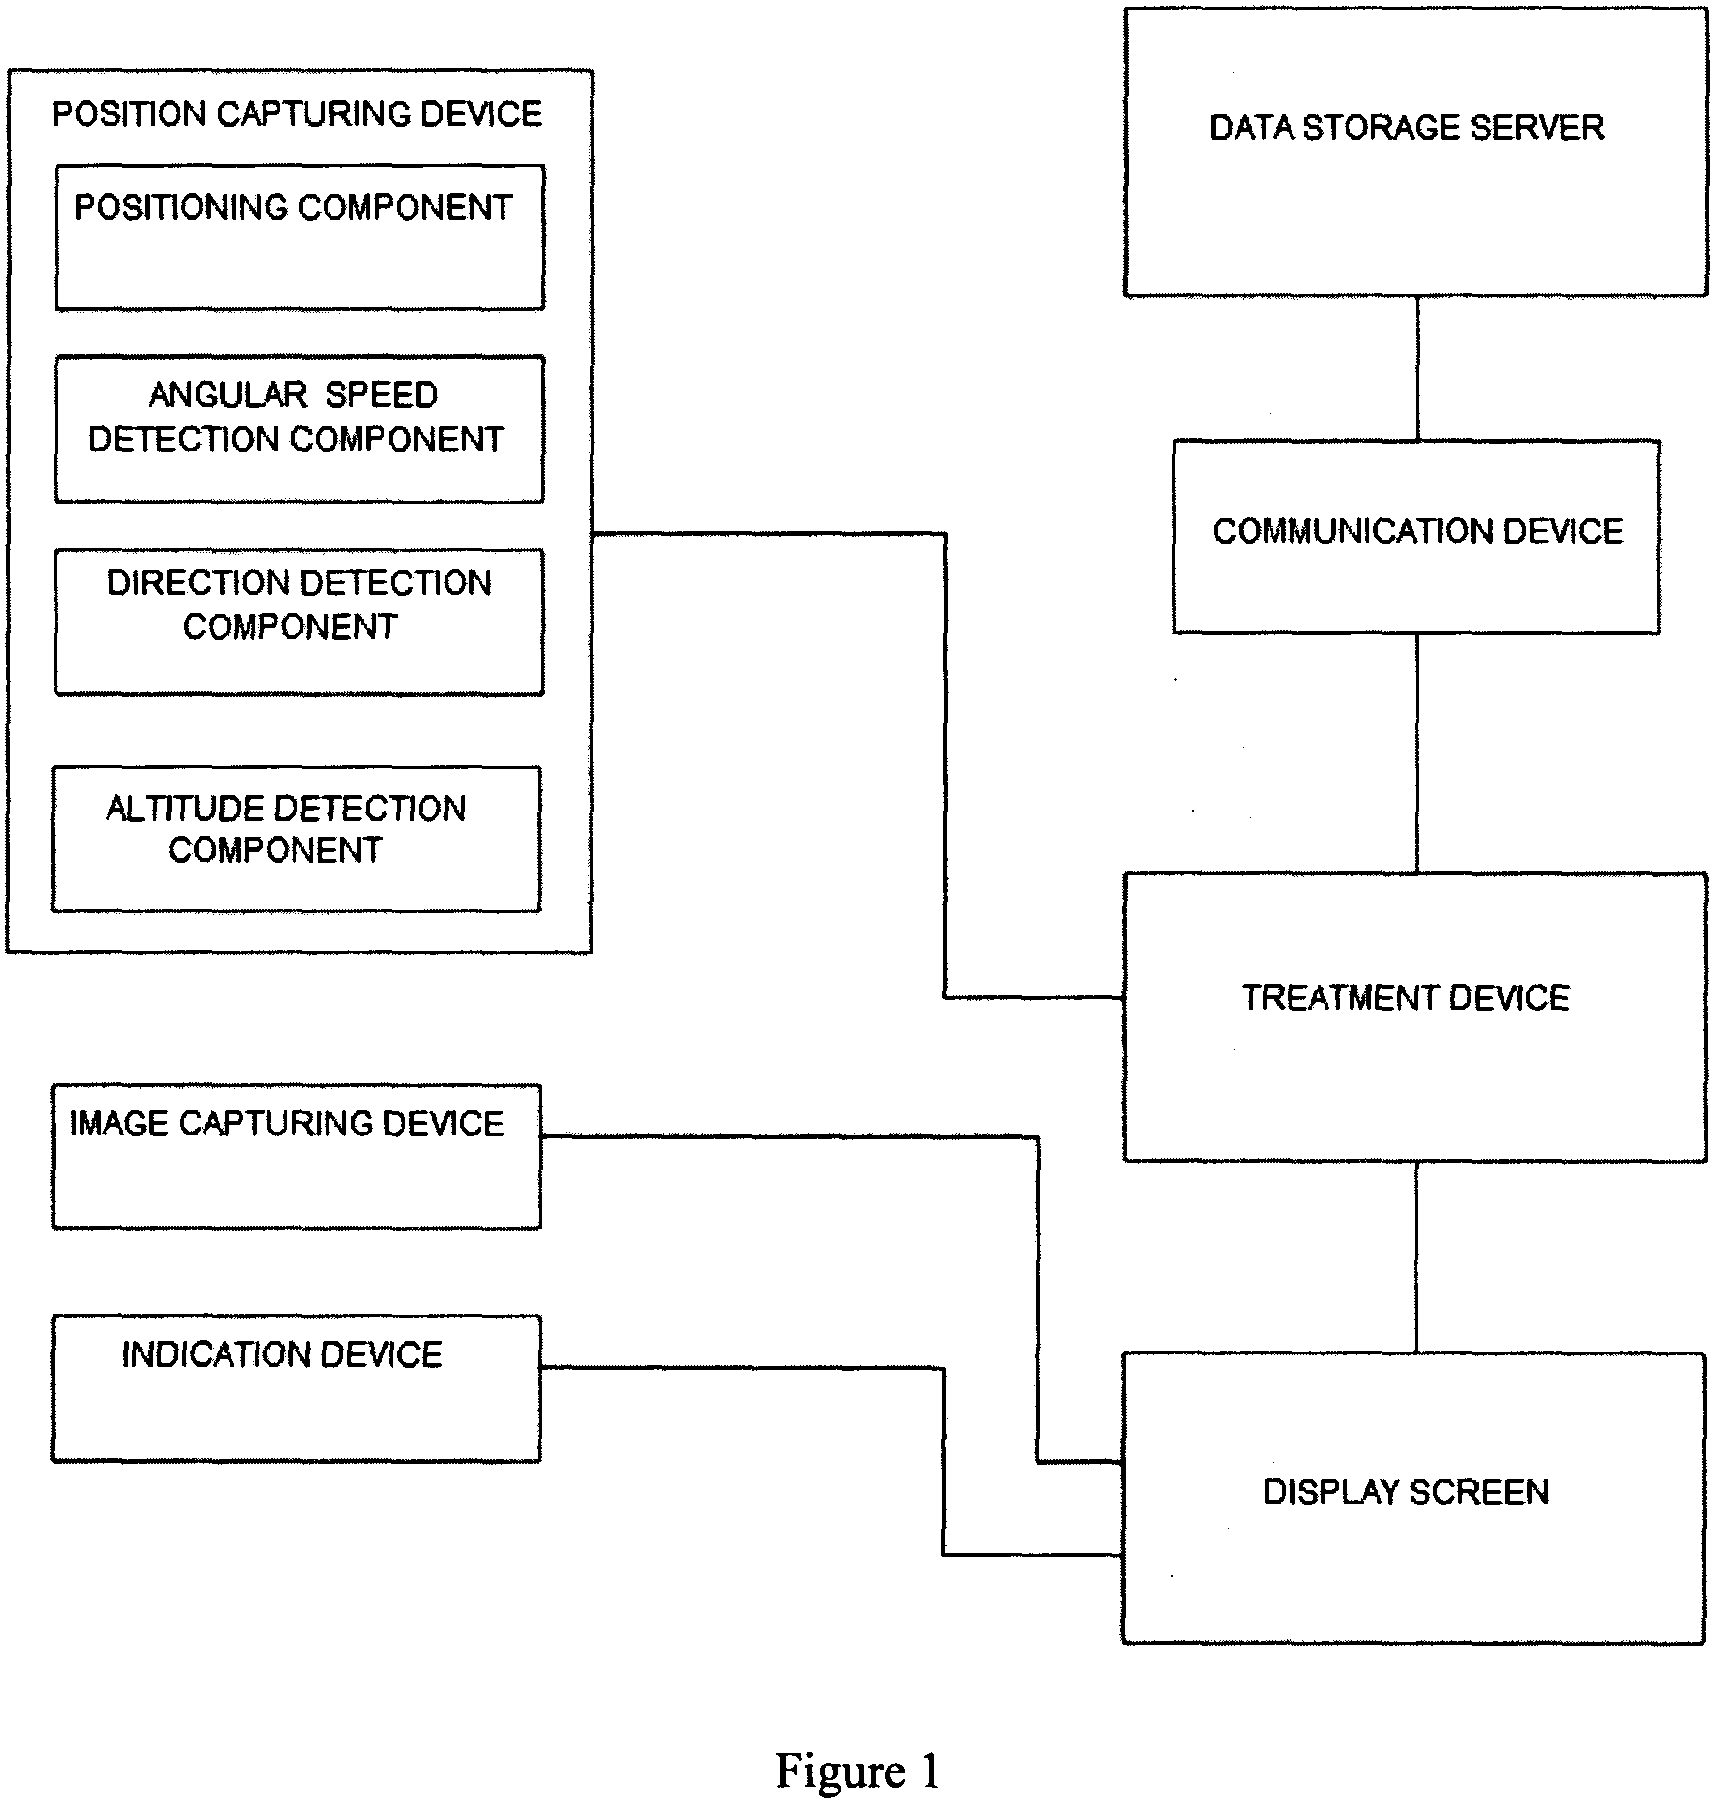 METHOD AND SYSTEM FOR GUIDING THE POSITION